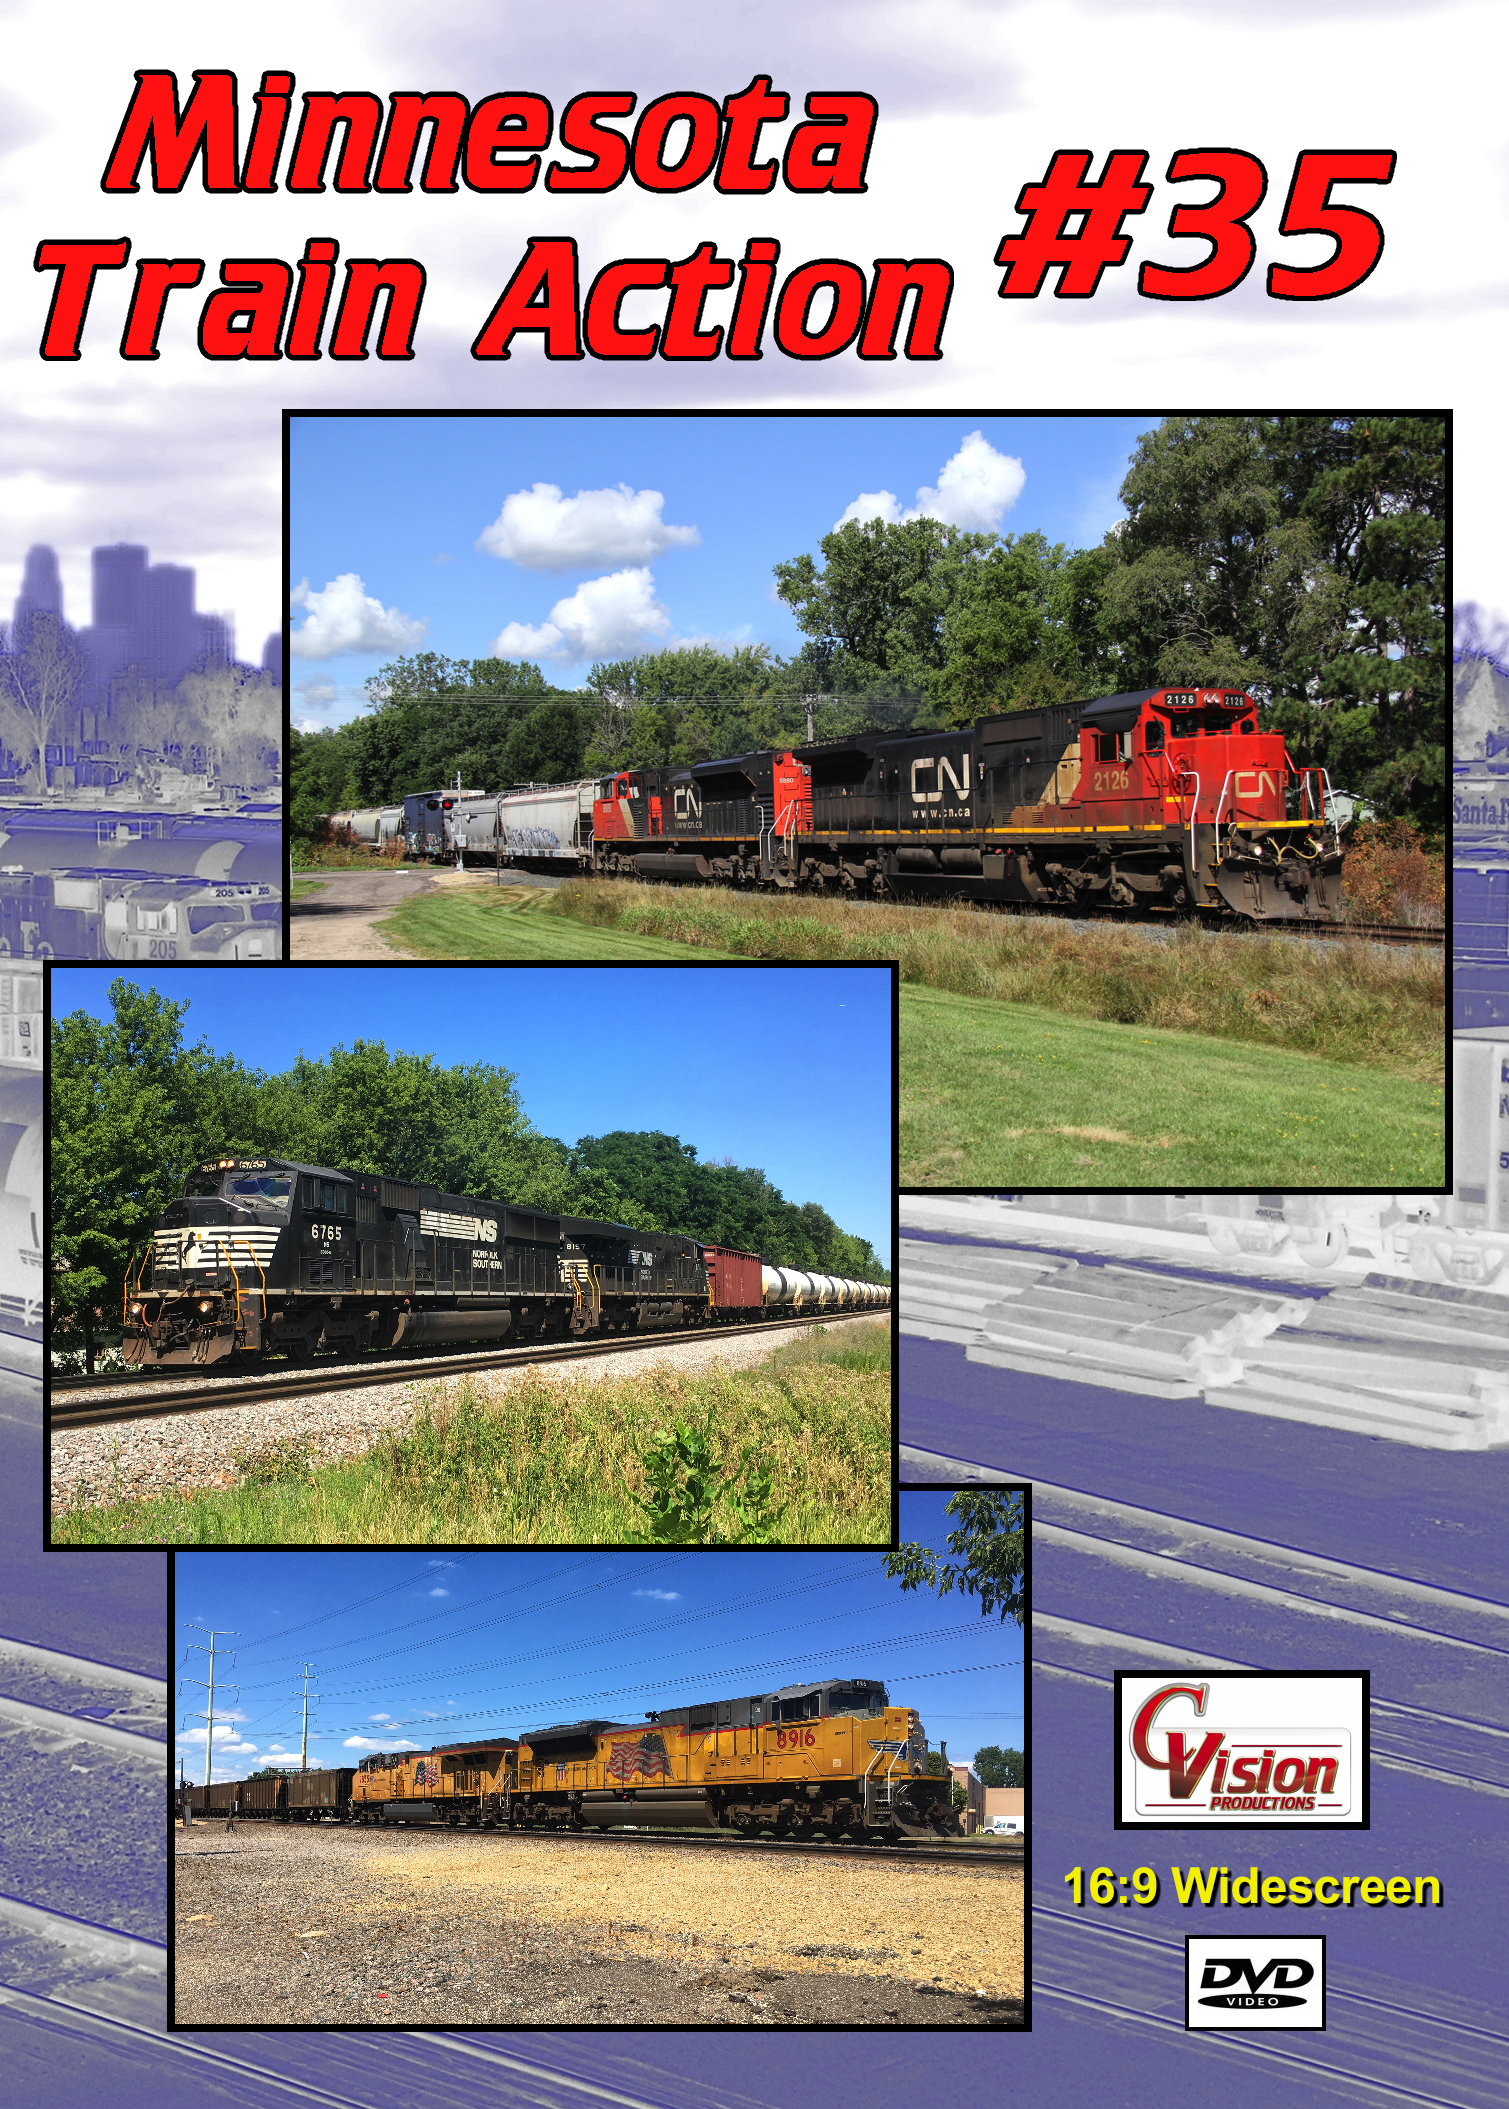 Minnesota Train Action Number 35 DVD C Vision Productions MTA35DVD